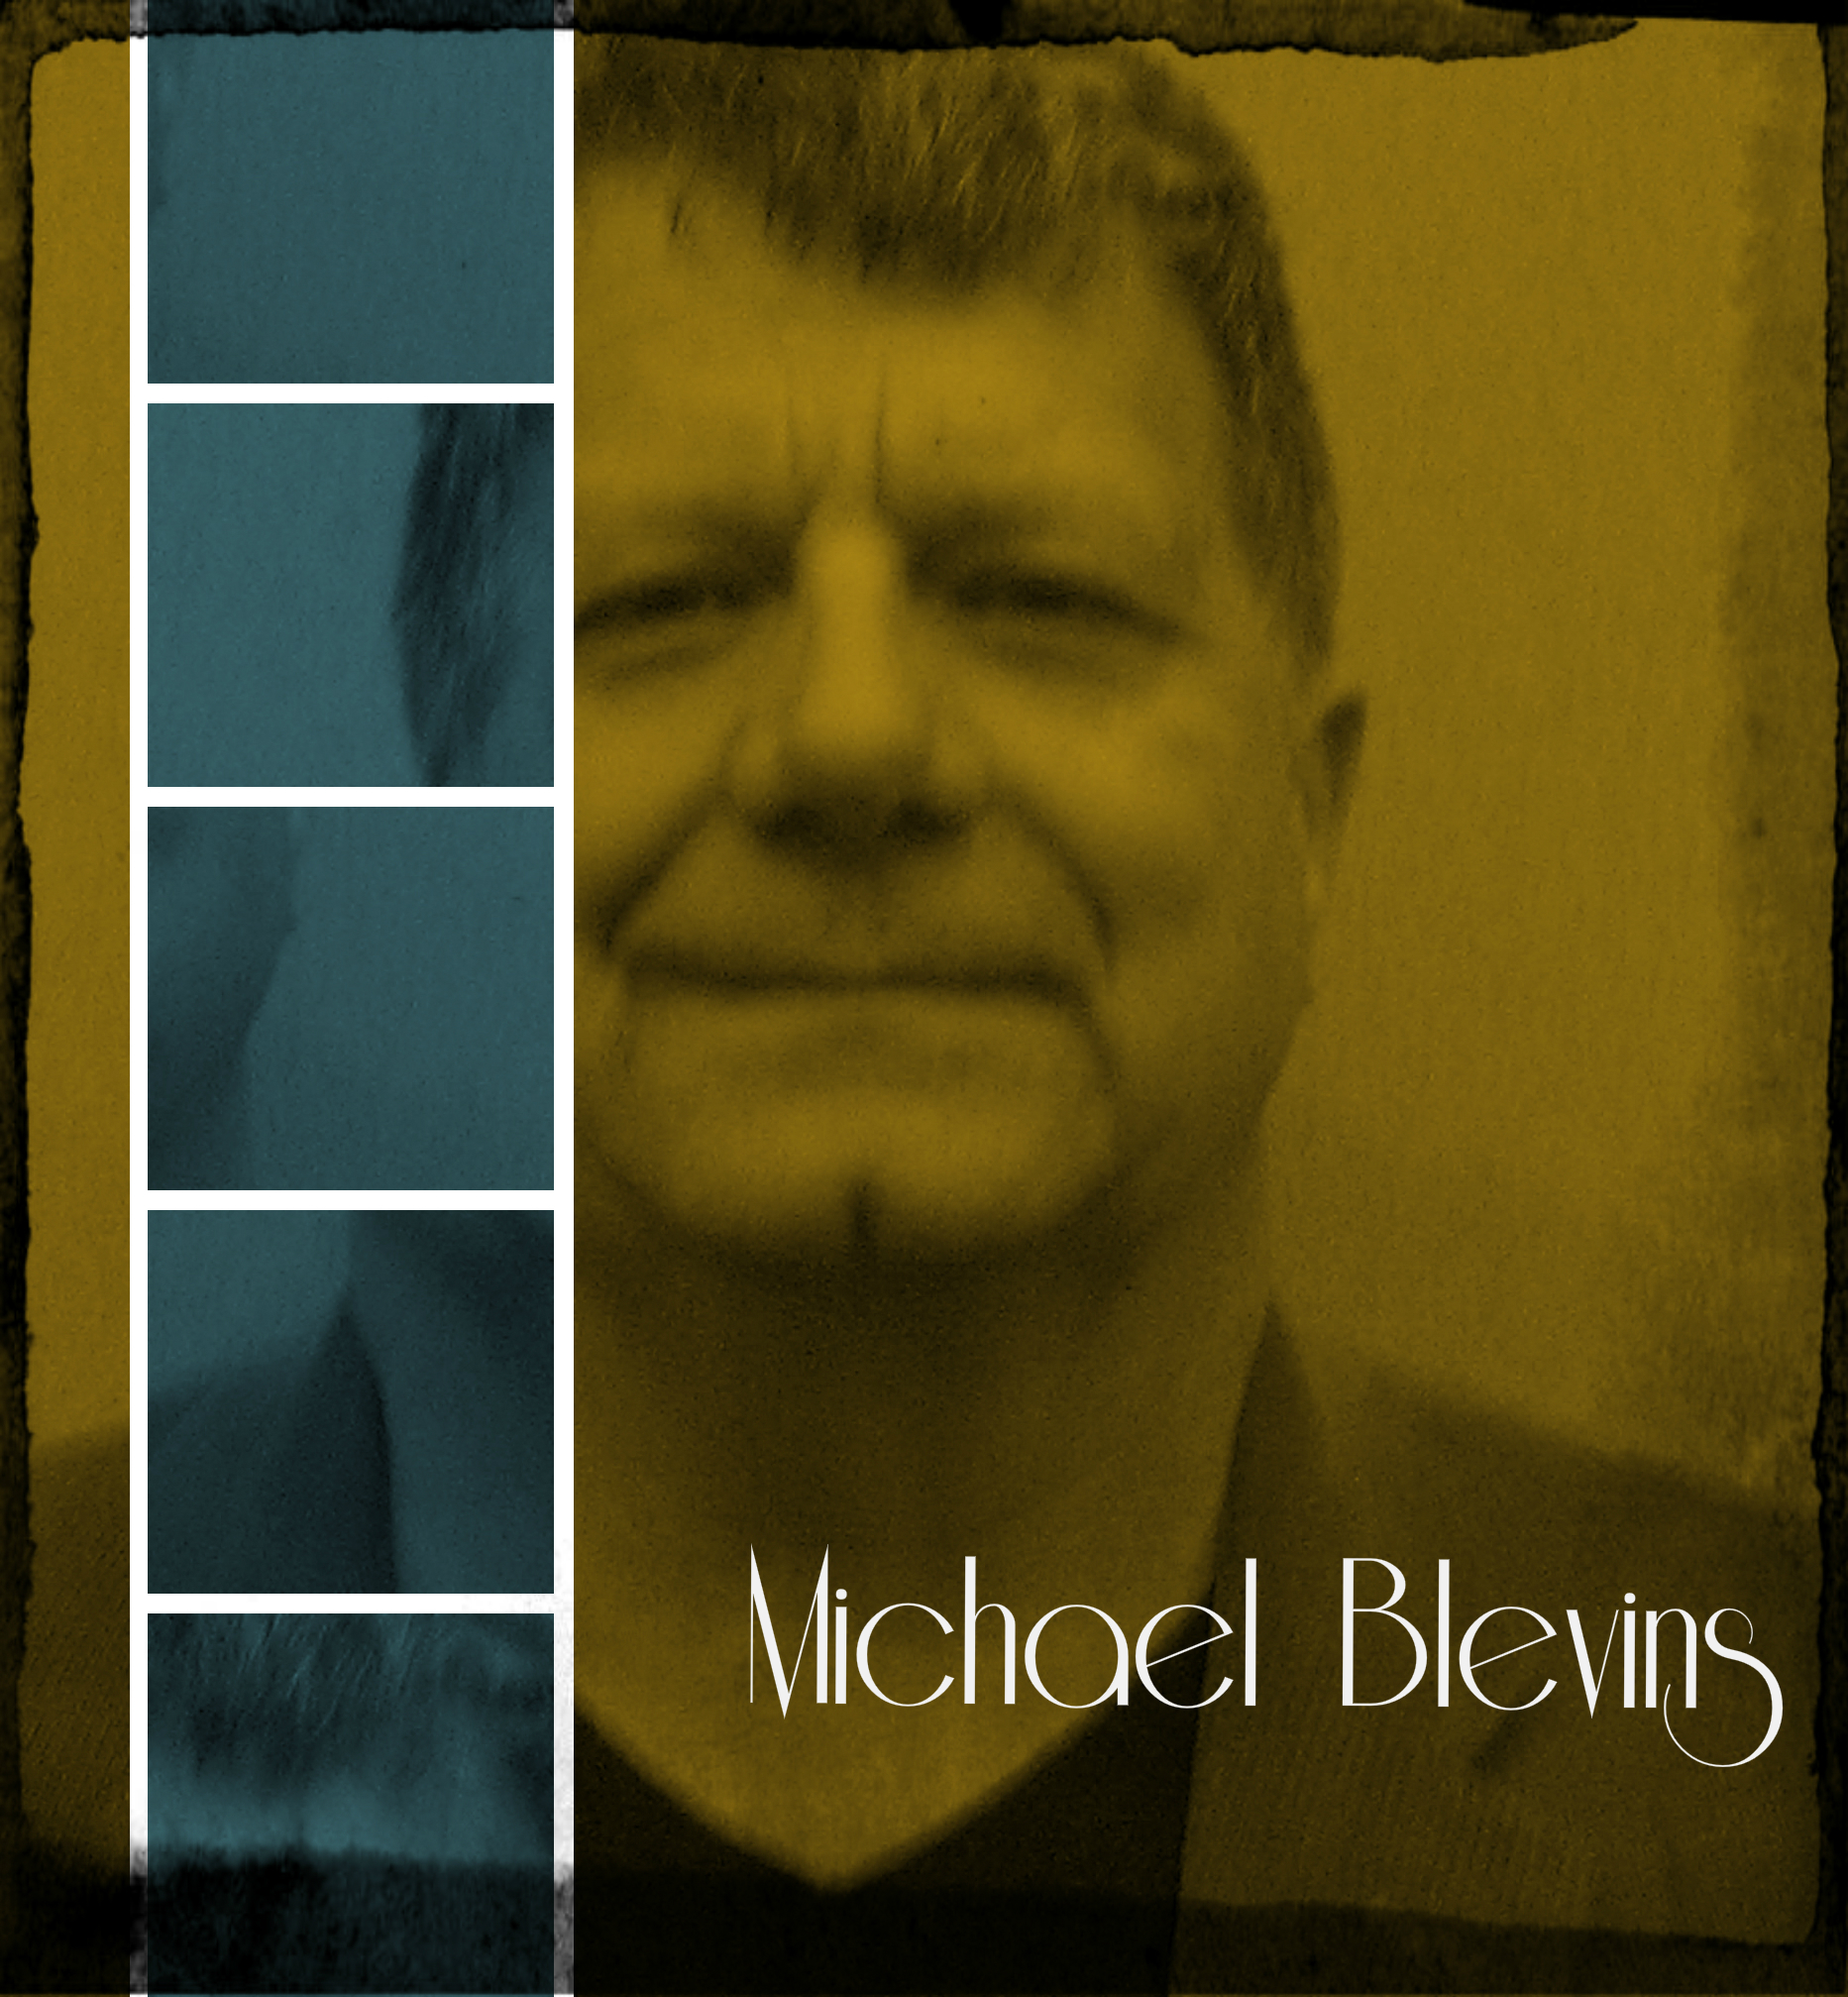 Mike_Blevins_Blog_Pic_Edit.jpg